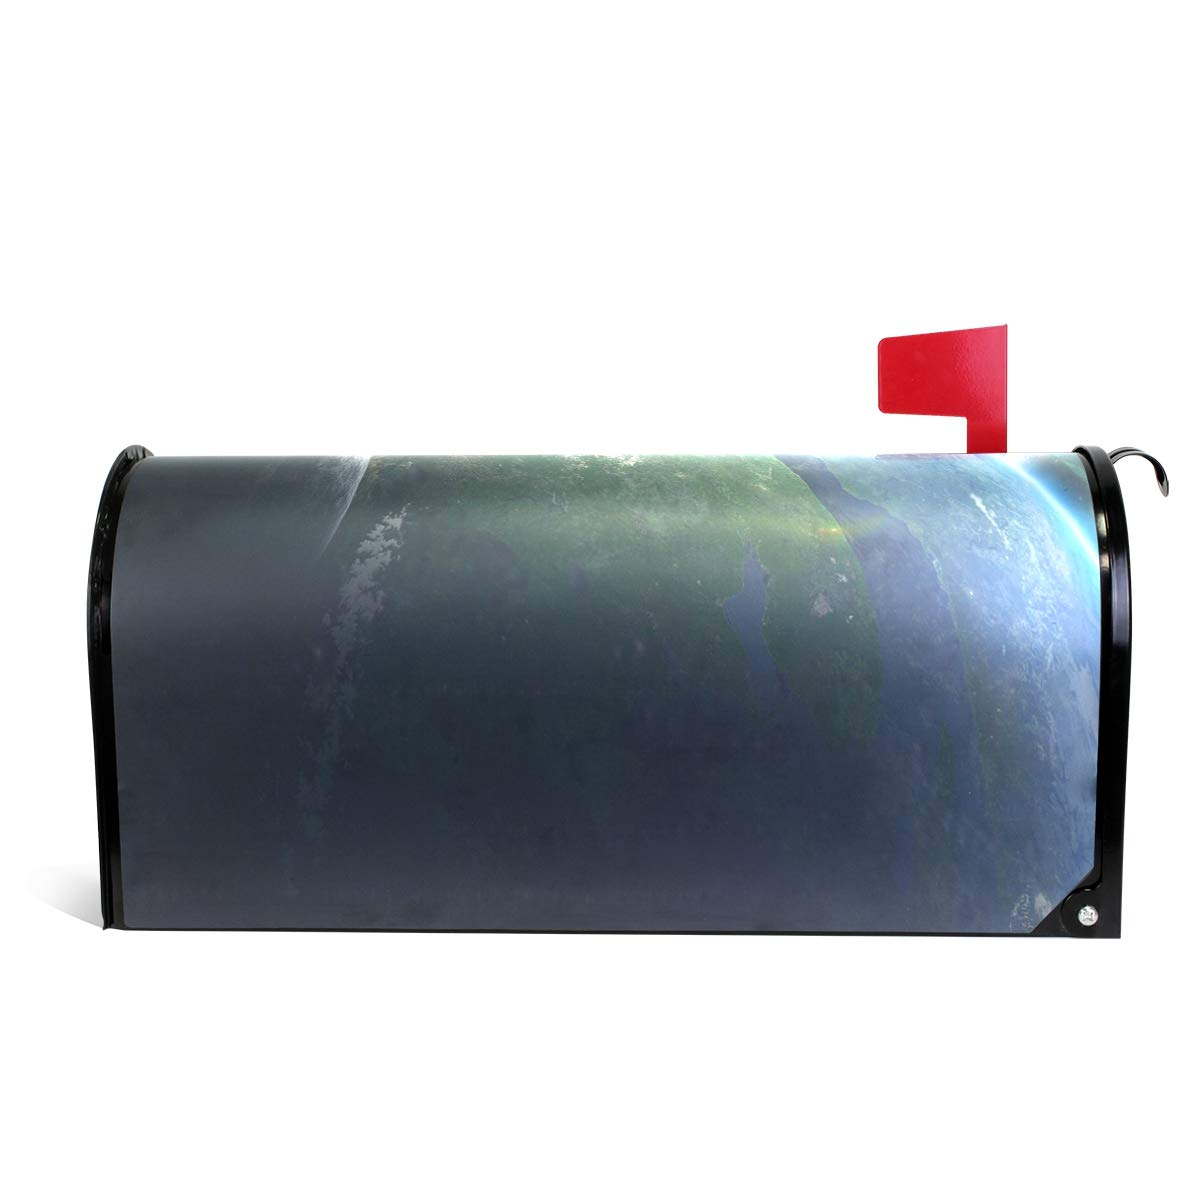 GAGH Mailbox Cover Magnetic Personalized The Strange Light of Outer Space Suitable for US Mailbox 25.5 x 20.8 Inch